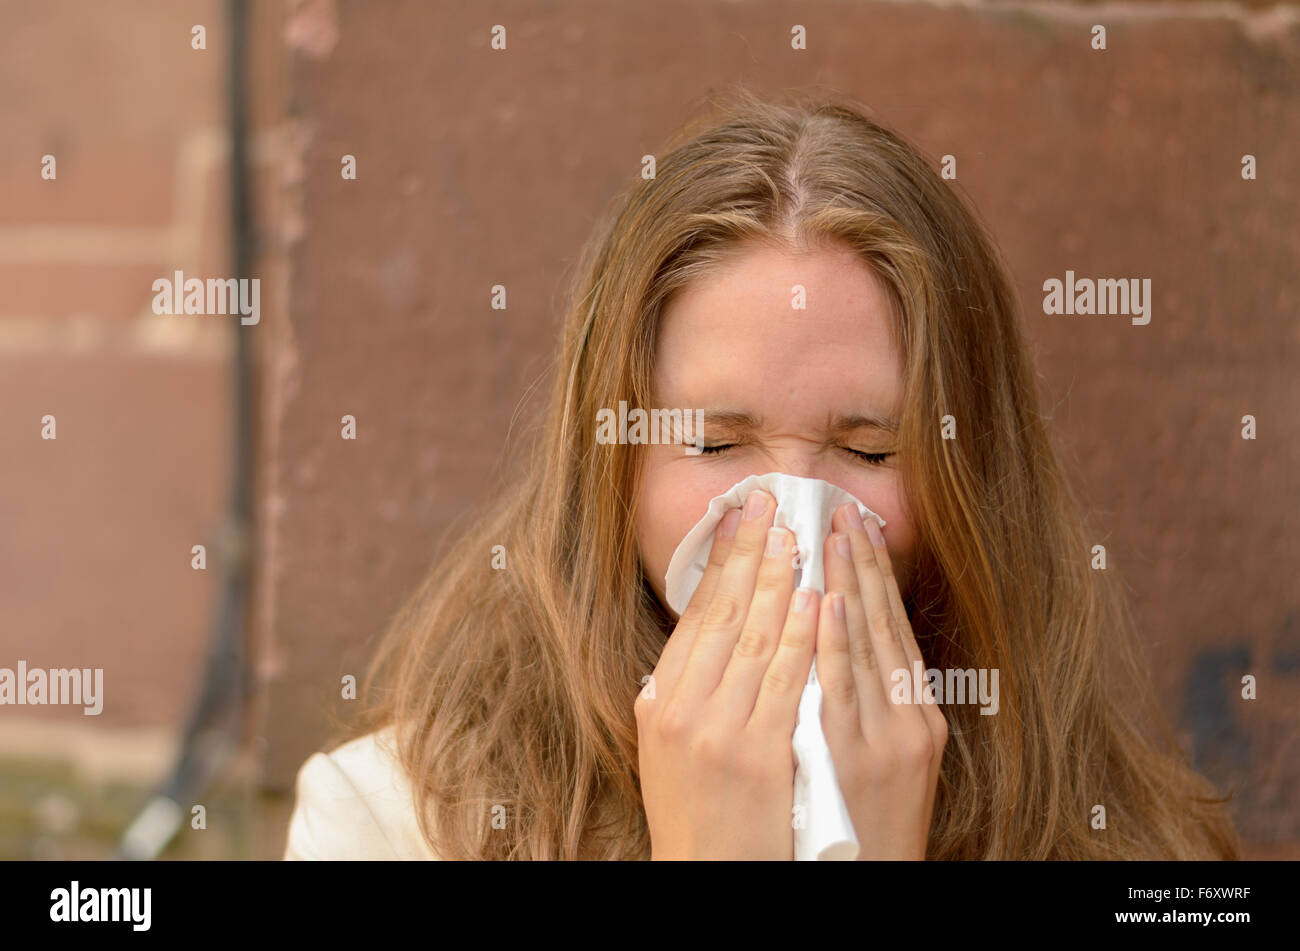 Young woman blowing her nose on a handkerchief conceptual of an illness, flu, cold, allergic rhinitis or hay fever - Stock Image